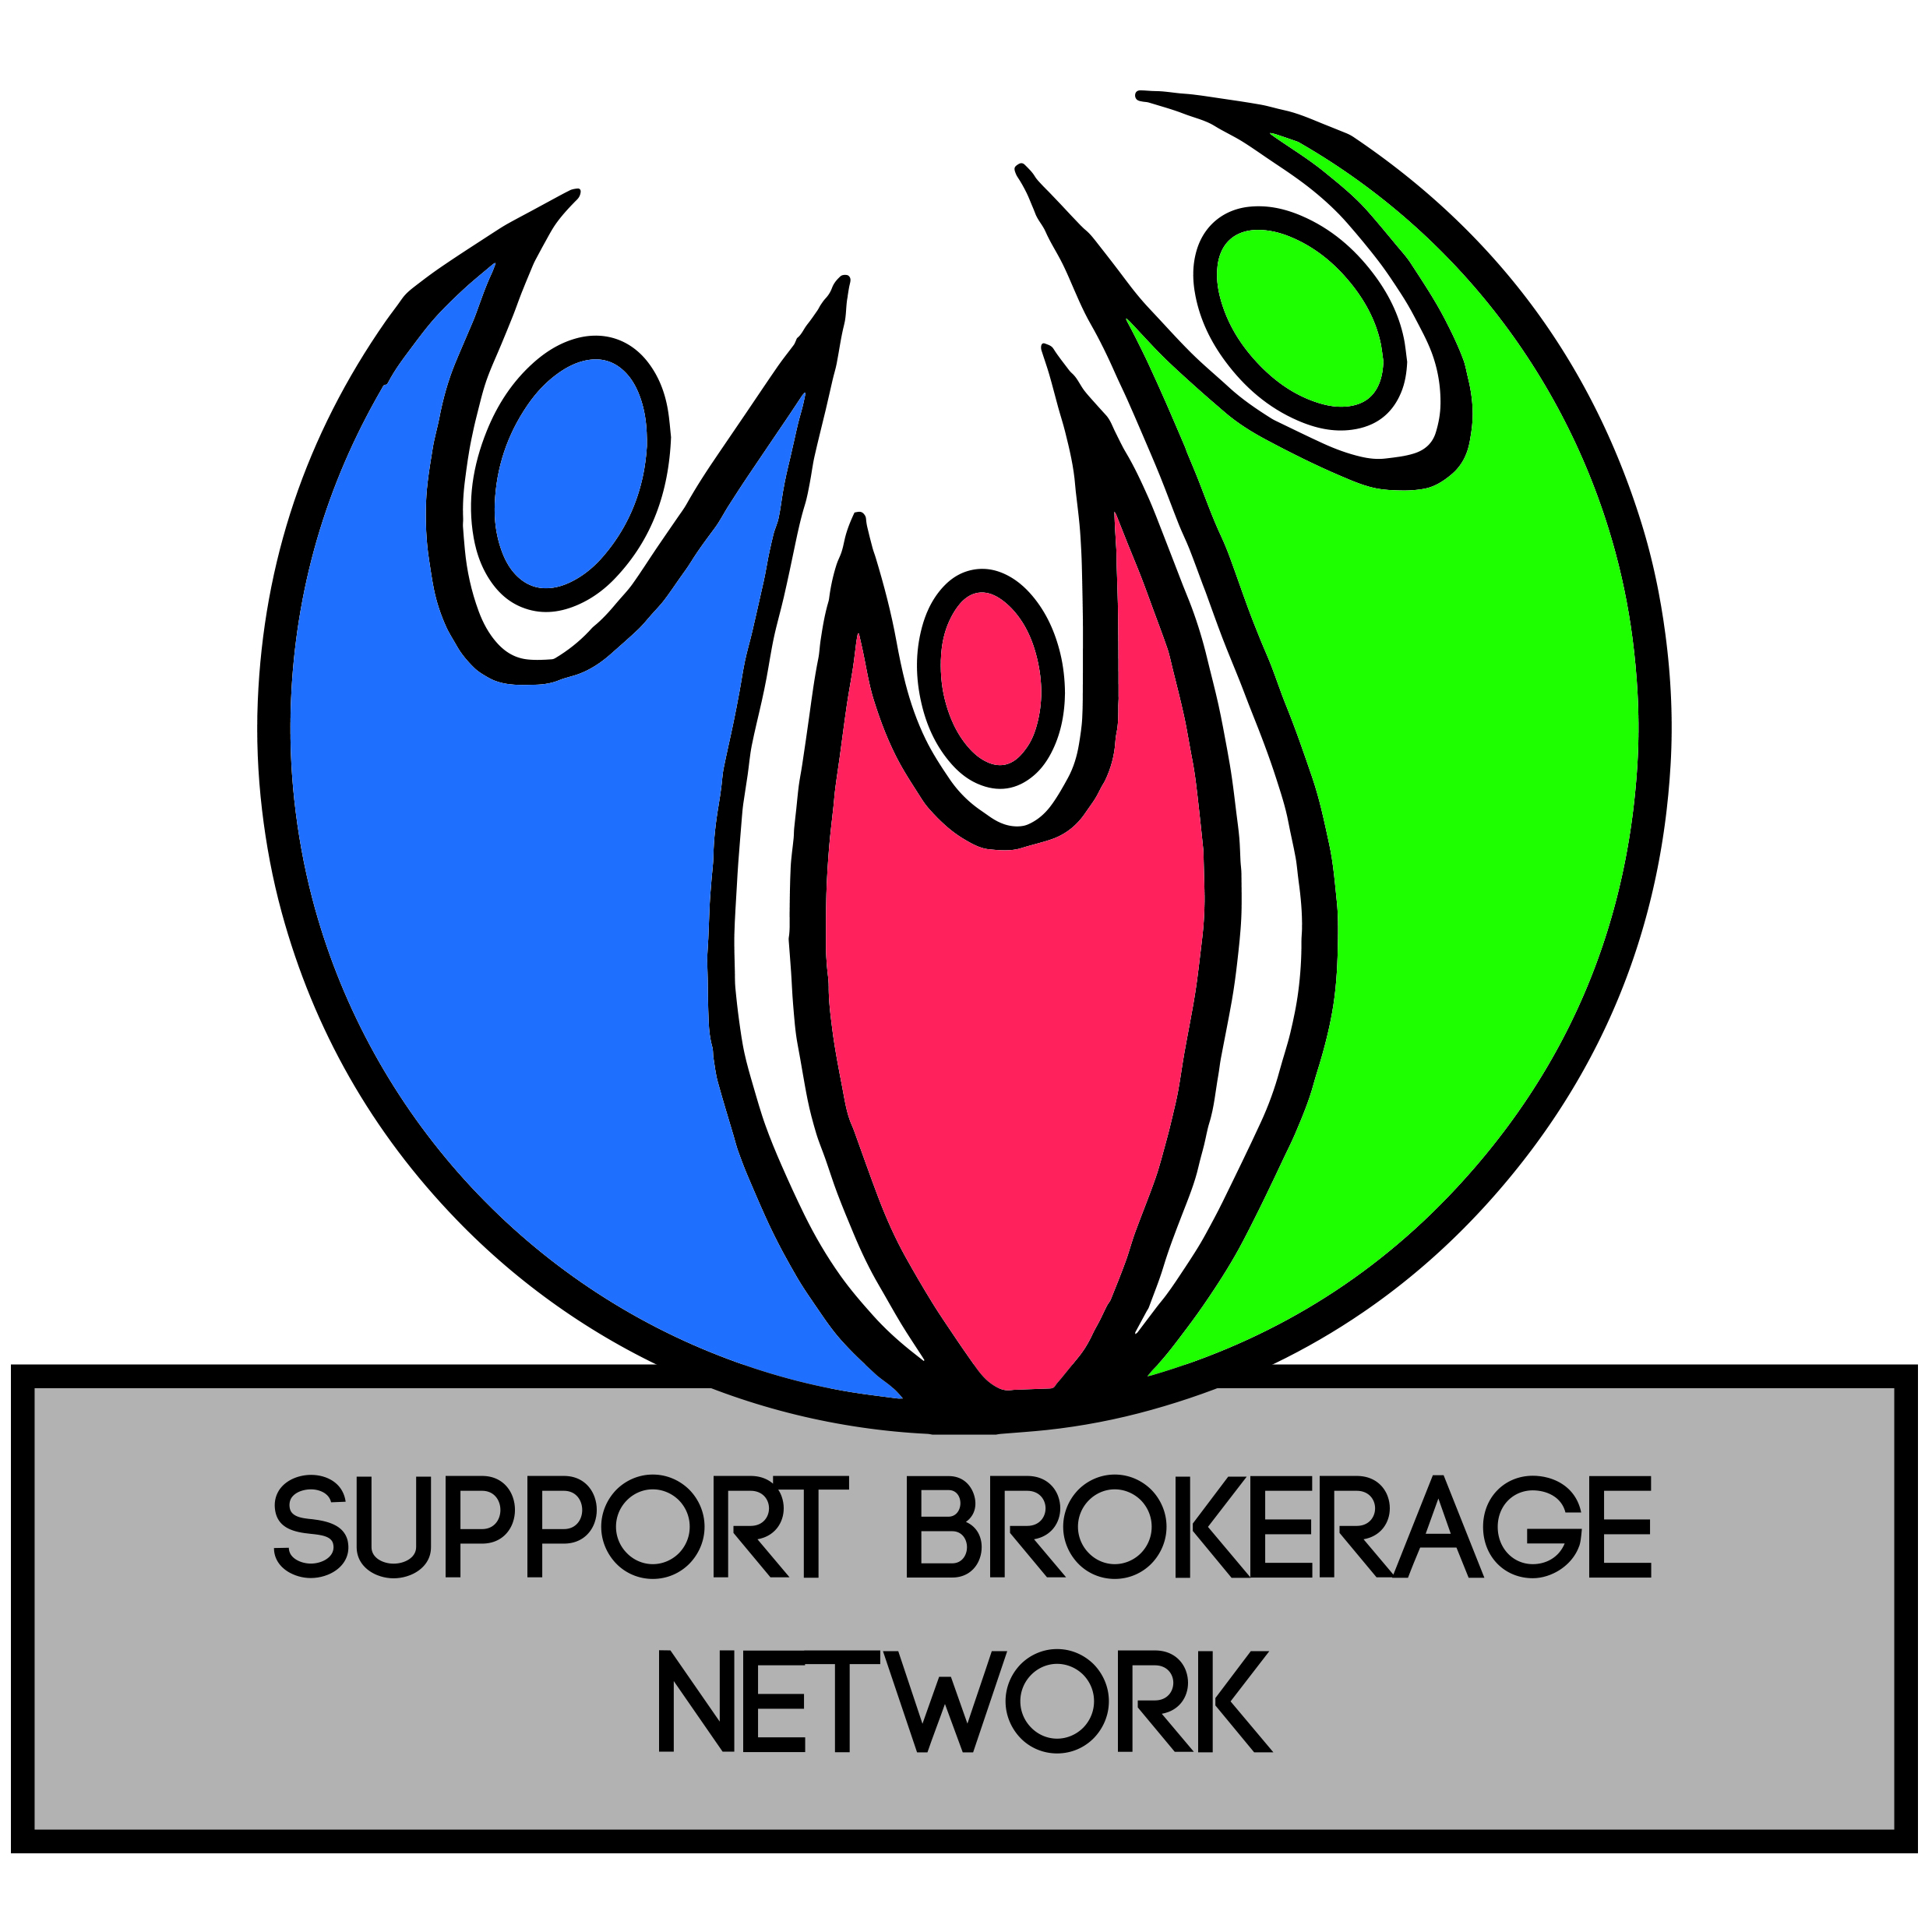 Name change and re-brand for the National Brokerage Network!